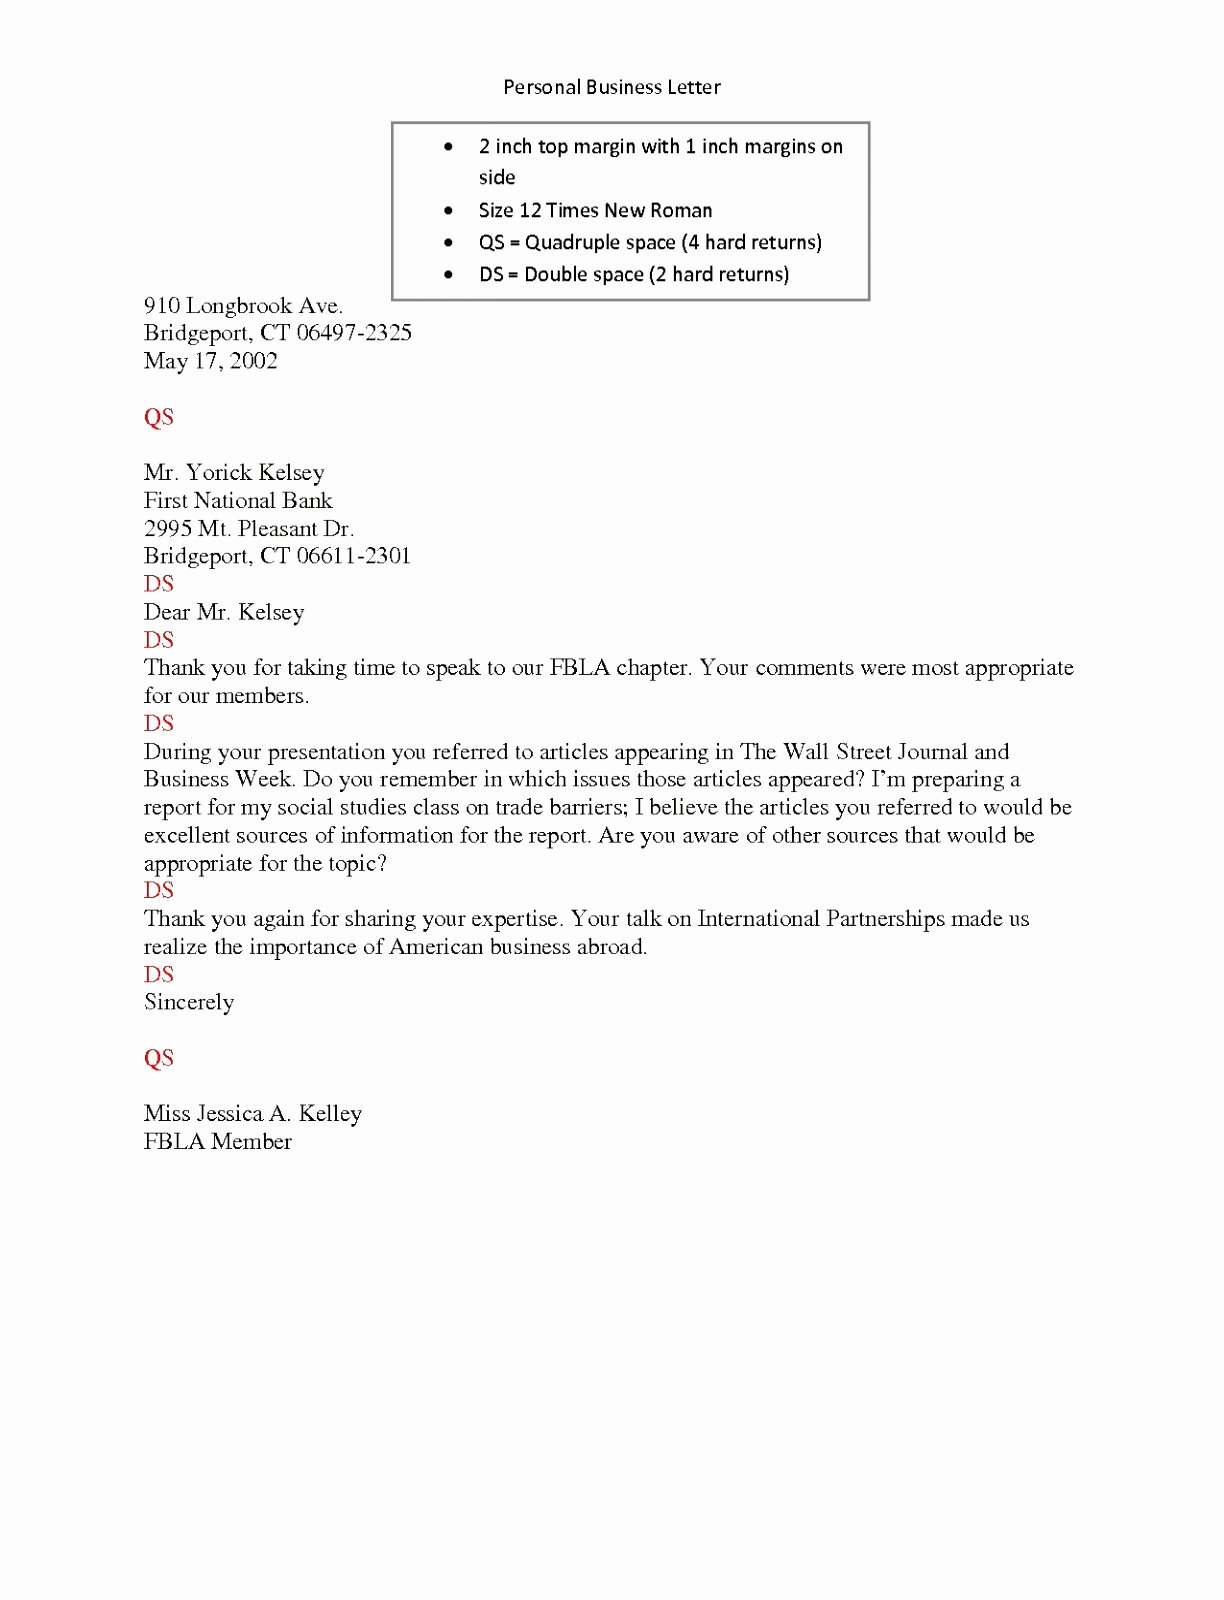 Cover Letter format Google Docs Beautiful 6 Google Docs Business Letter Template Ieate